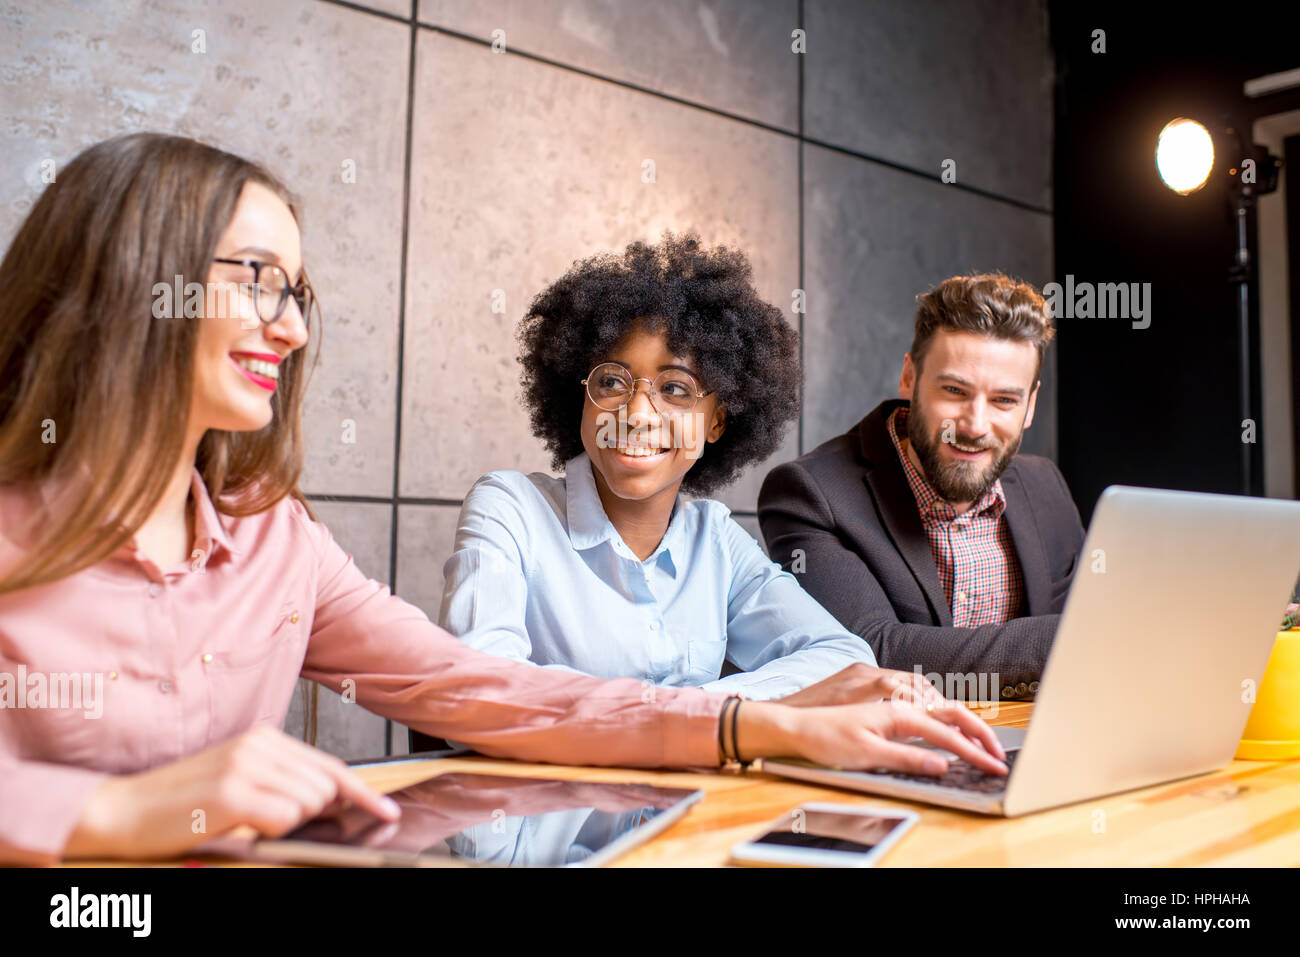 Coworkers at the office - Stock Image